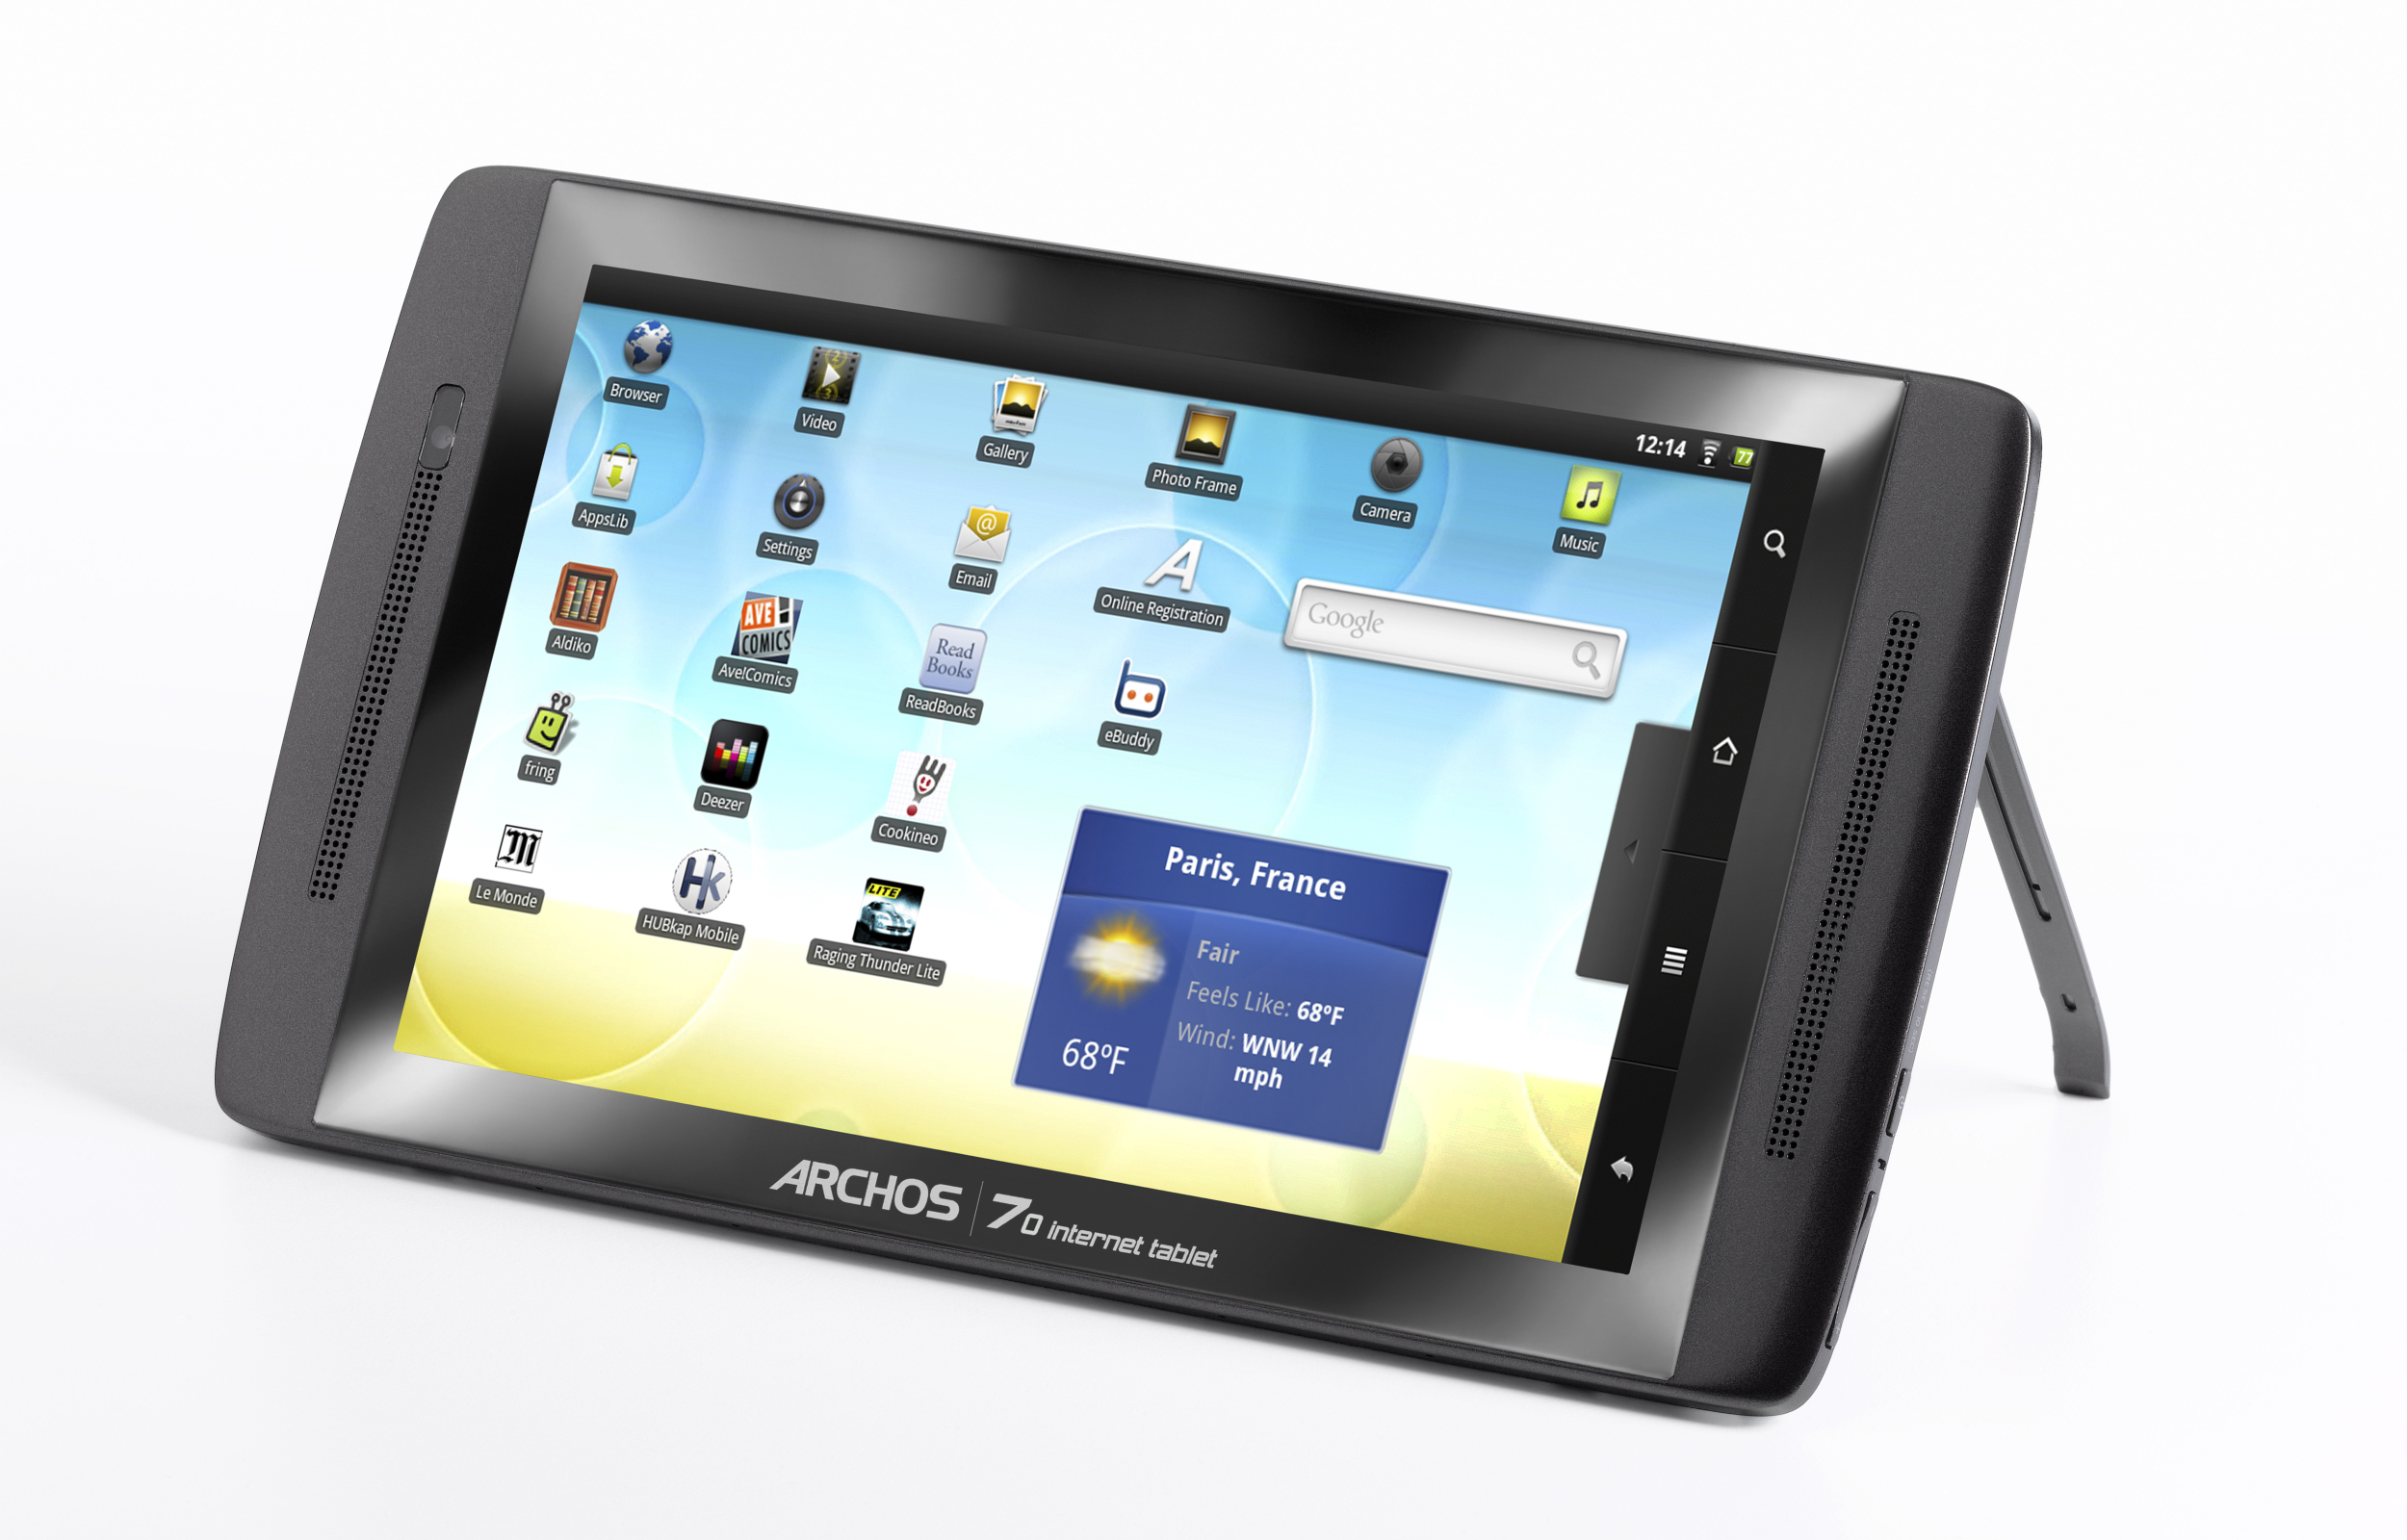 Archos 70 internet tablet 250gb инструкция